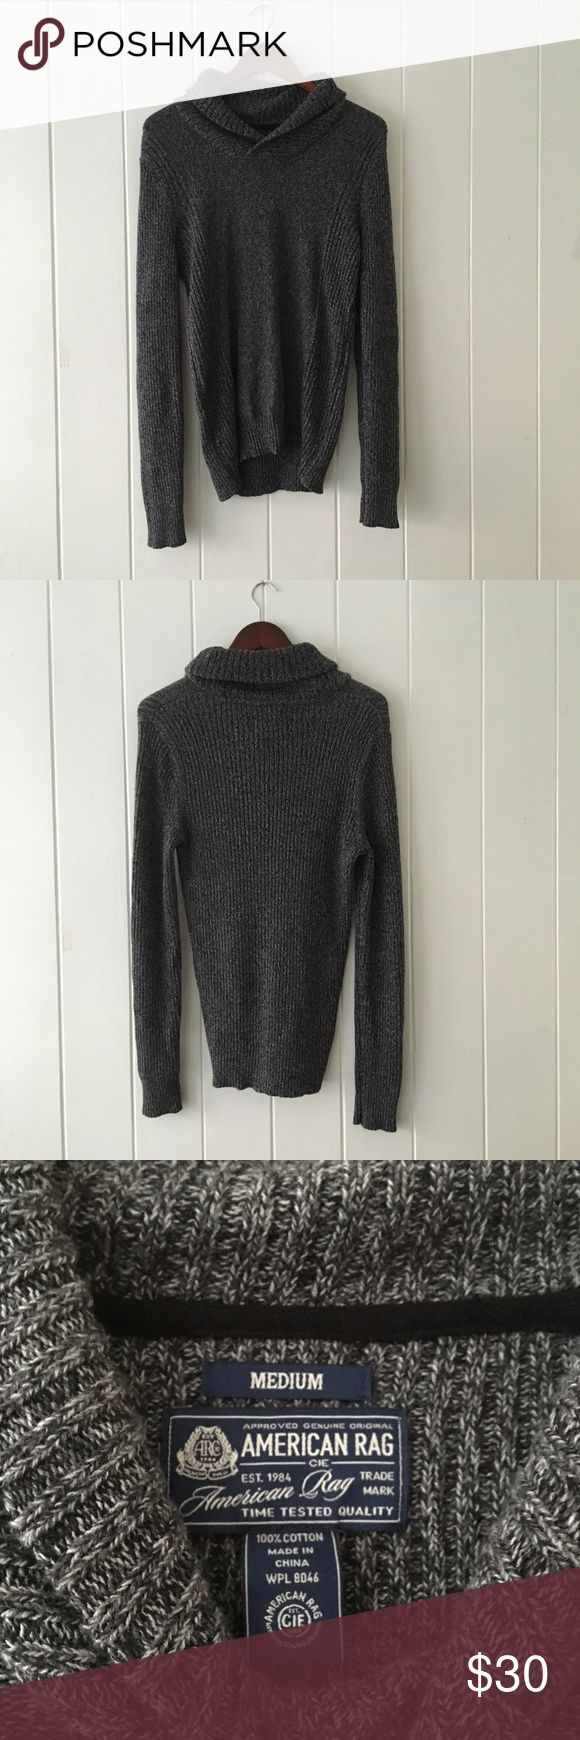 American Rag Men's Shawl Neck Pullover Sweater Modern shawl-collar sweater in soft cotton for ultimate comfort. Warm knit pullover sweater. Dark gray color. Last picture shows fit American Rag Sweaters V-Neck